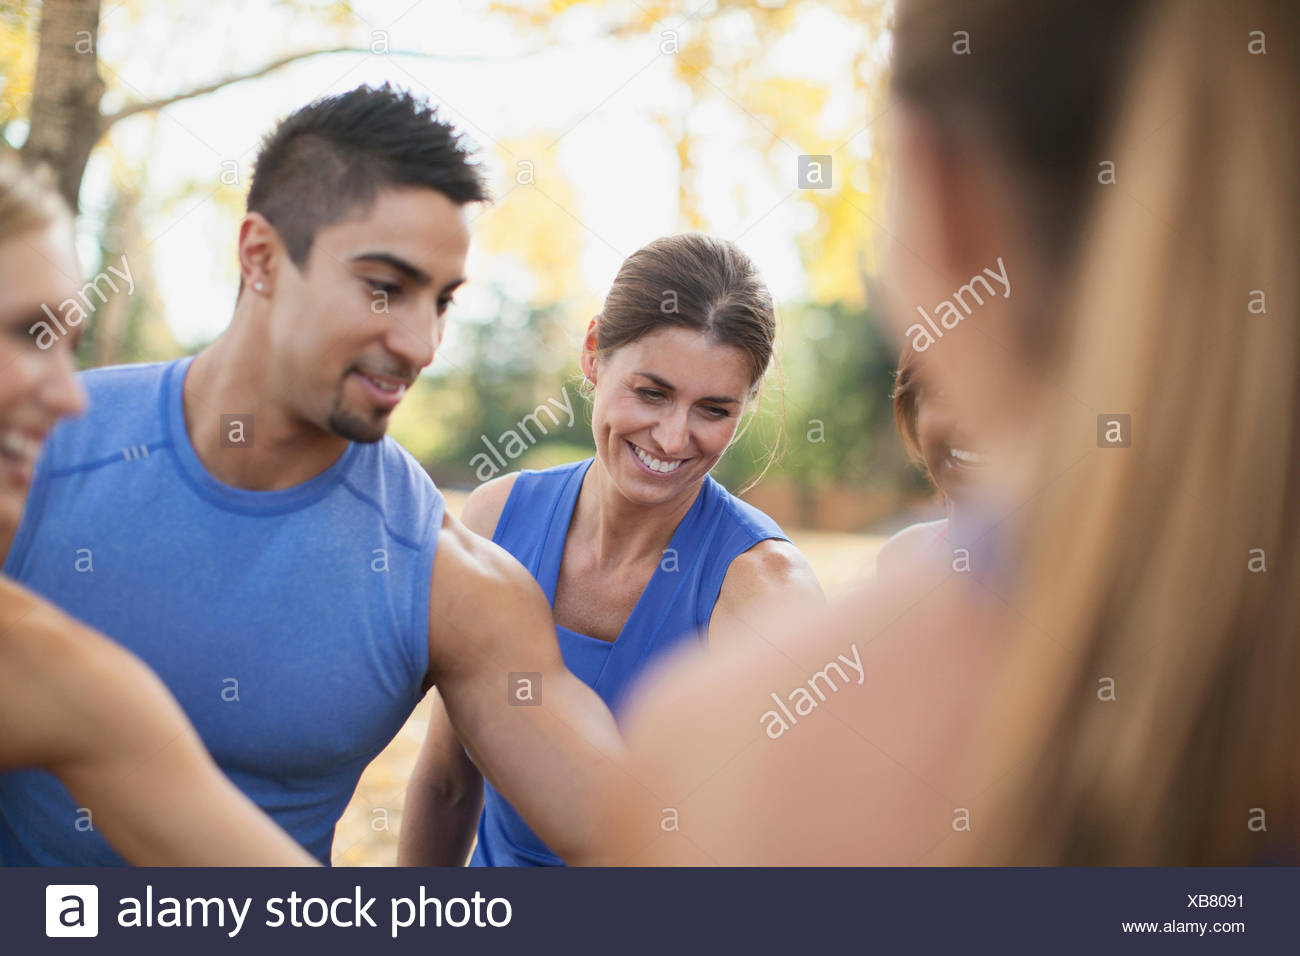 Fitness class doing hand over hand cheer after workout. - Stock Image